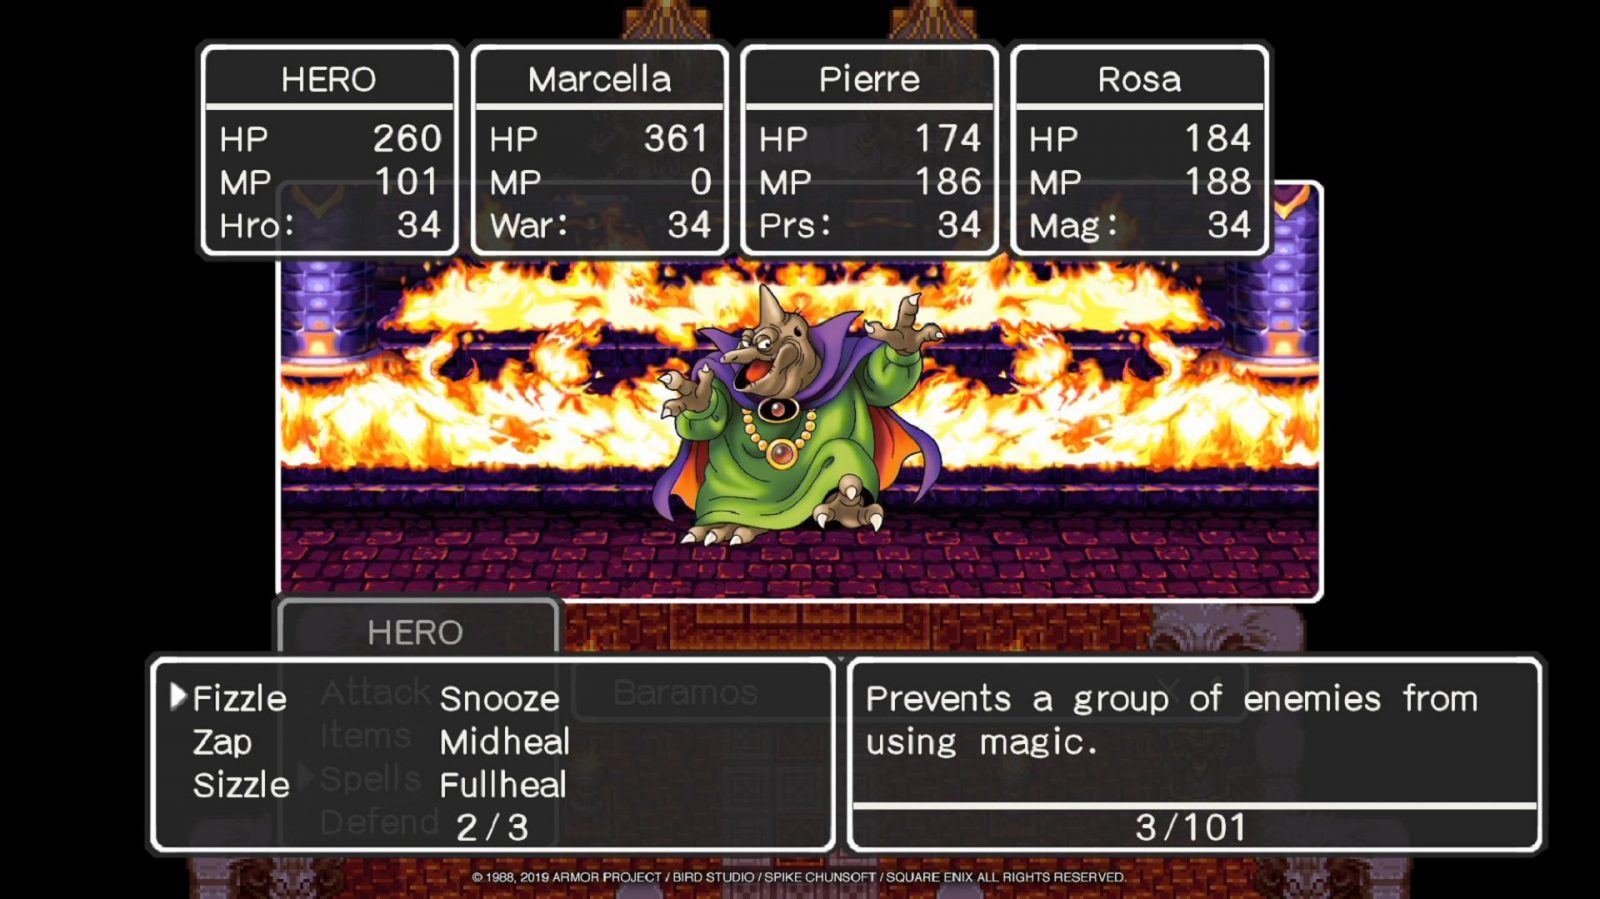 Dragon Quest 1-3 Coming to Nintendo Switch With Worse Graphics This September